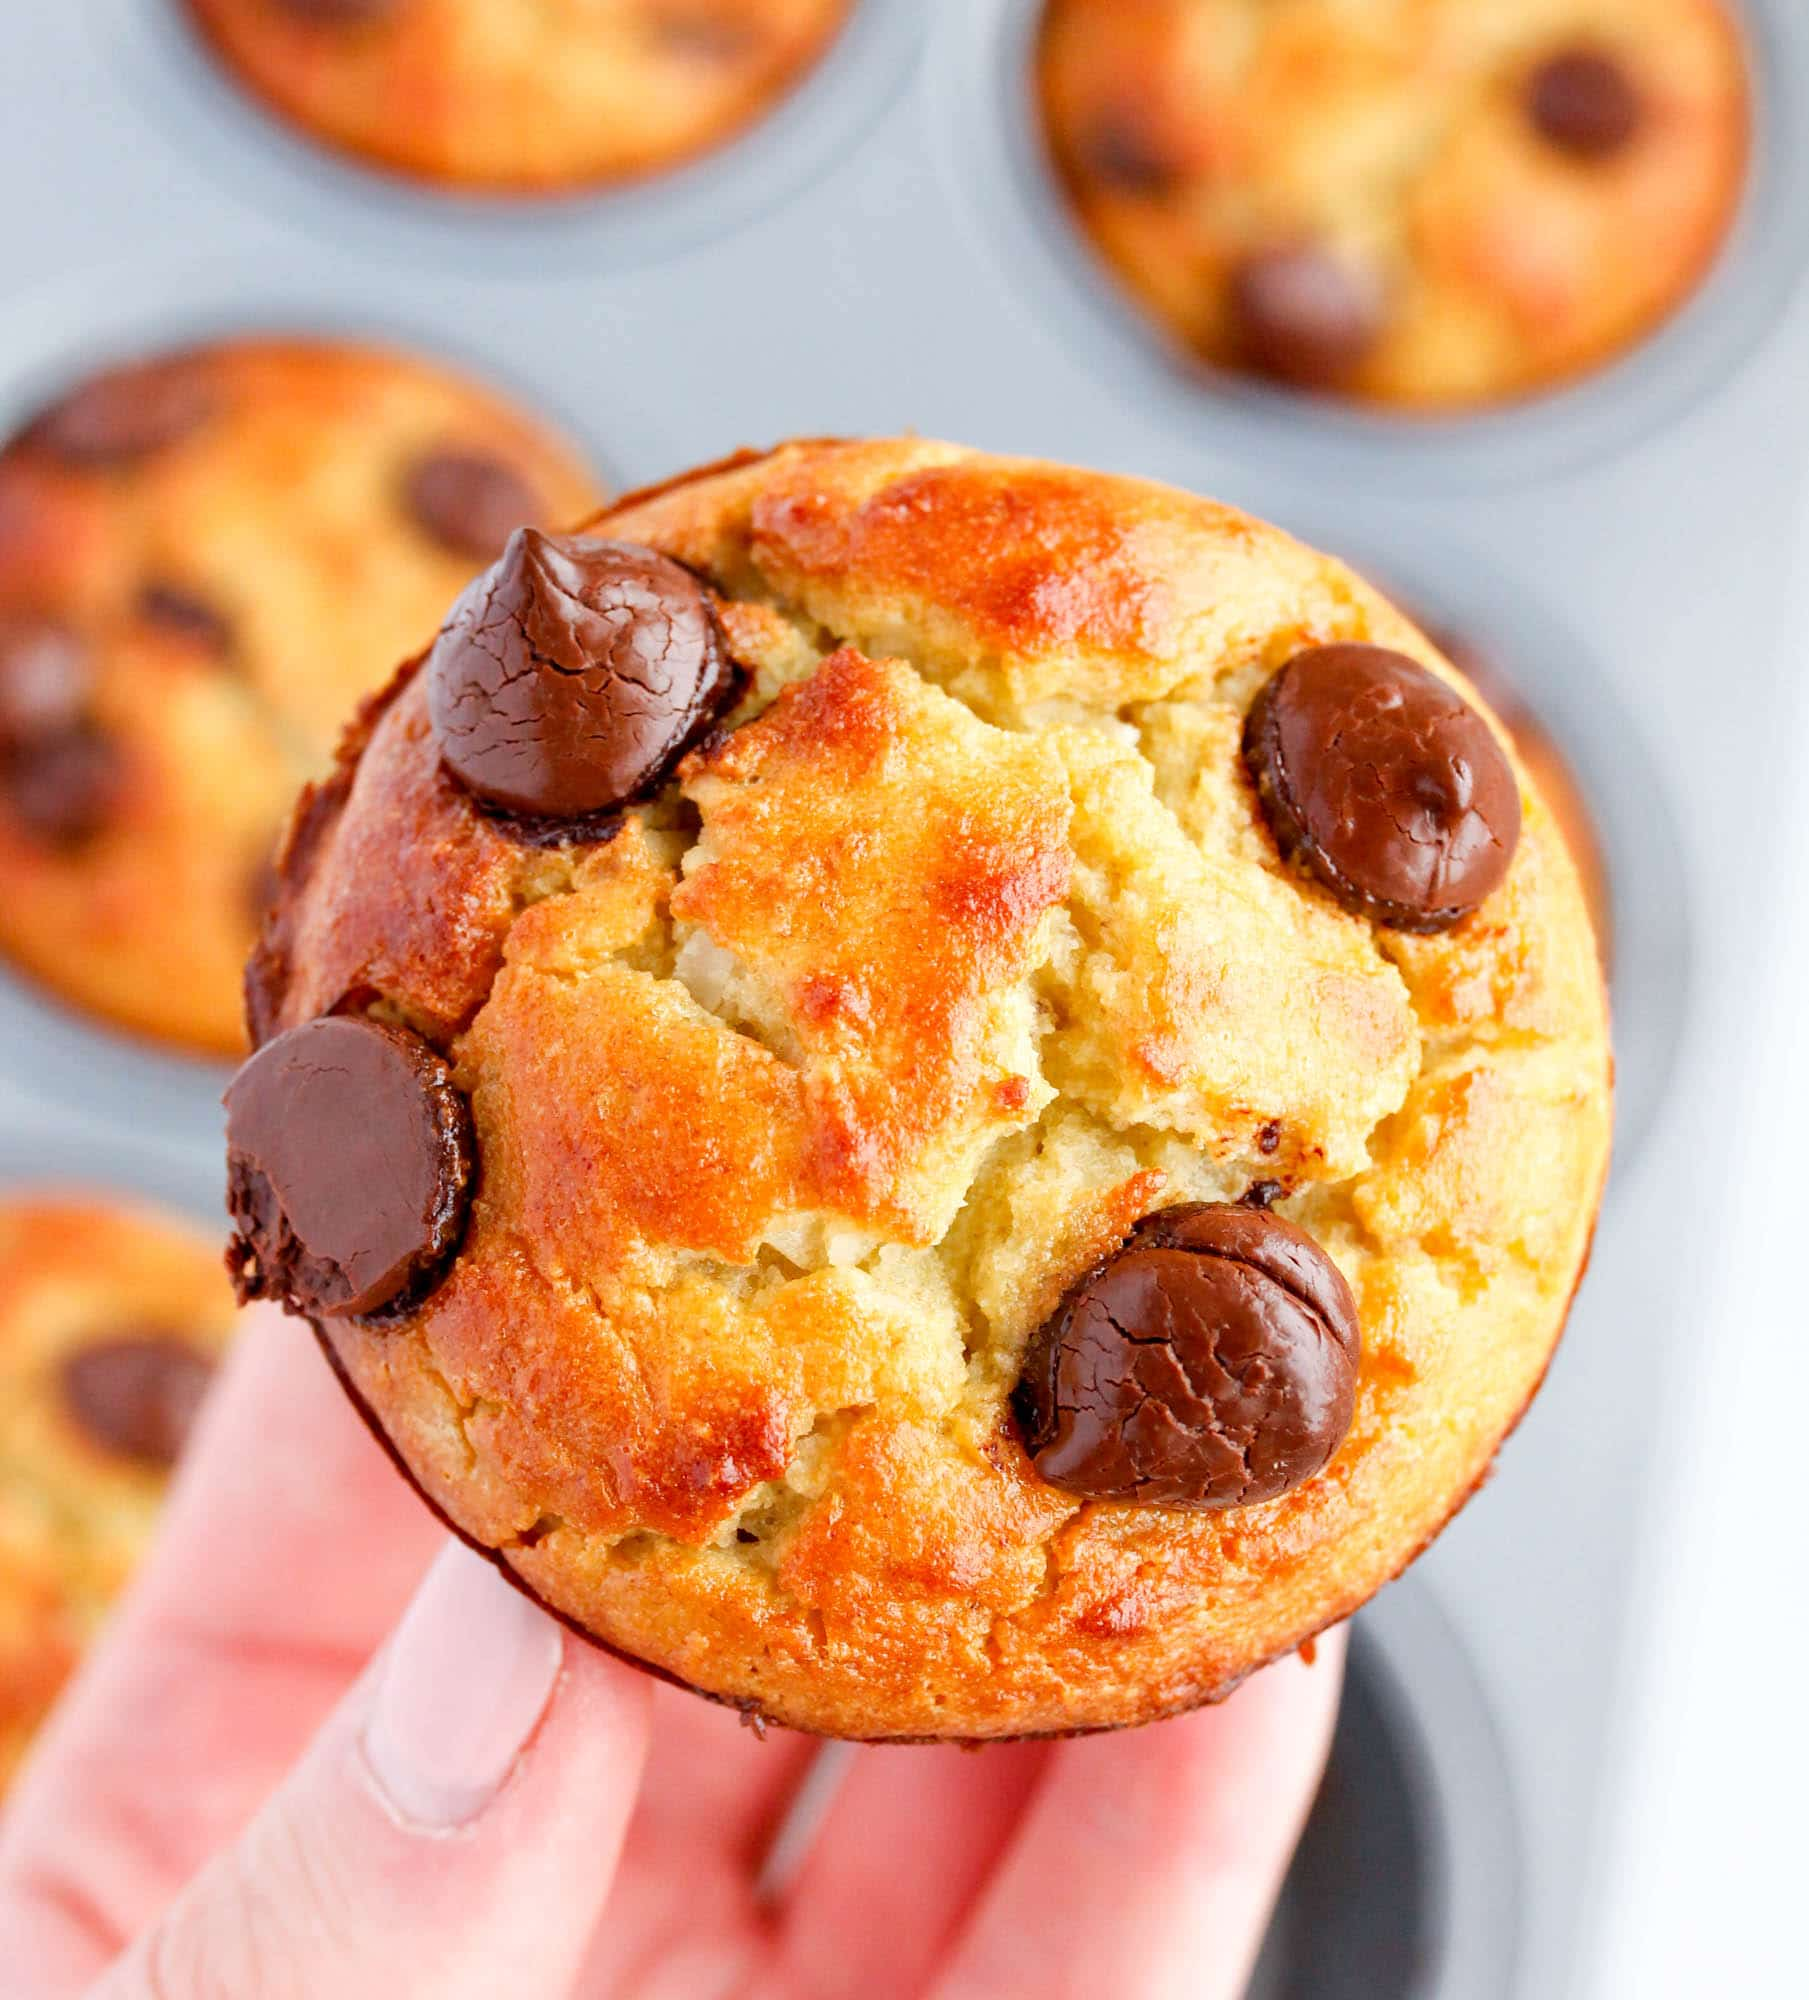 5-Minute Blender Paleo Banana Muffins with Chocolate Chips and Coconut